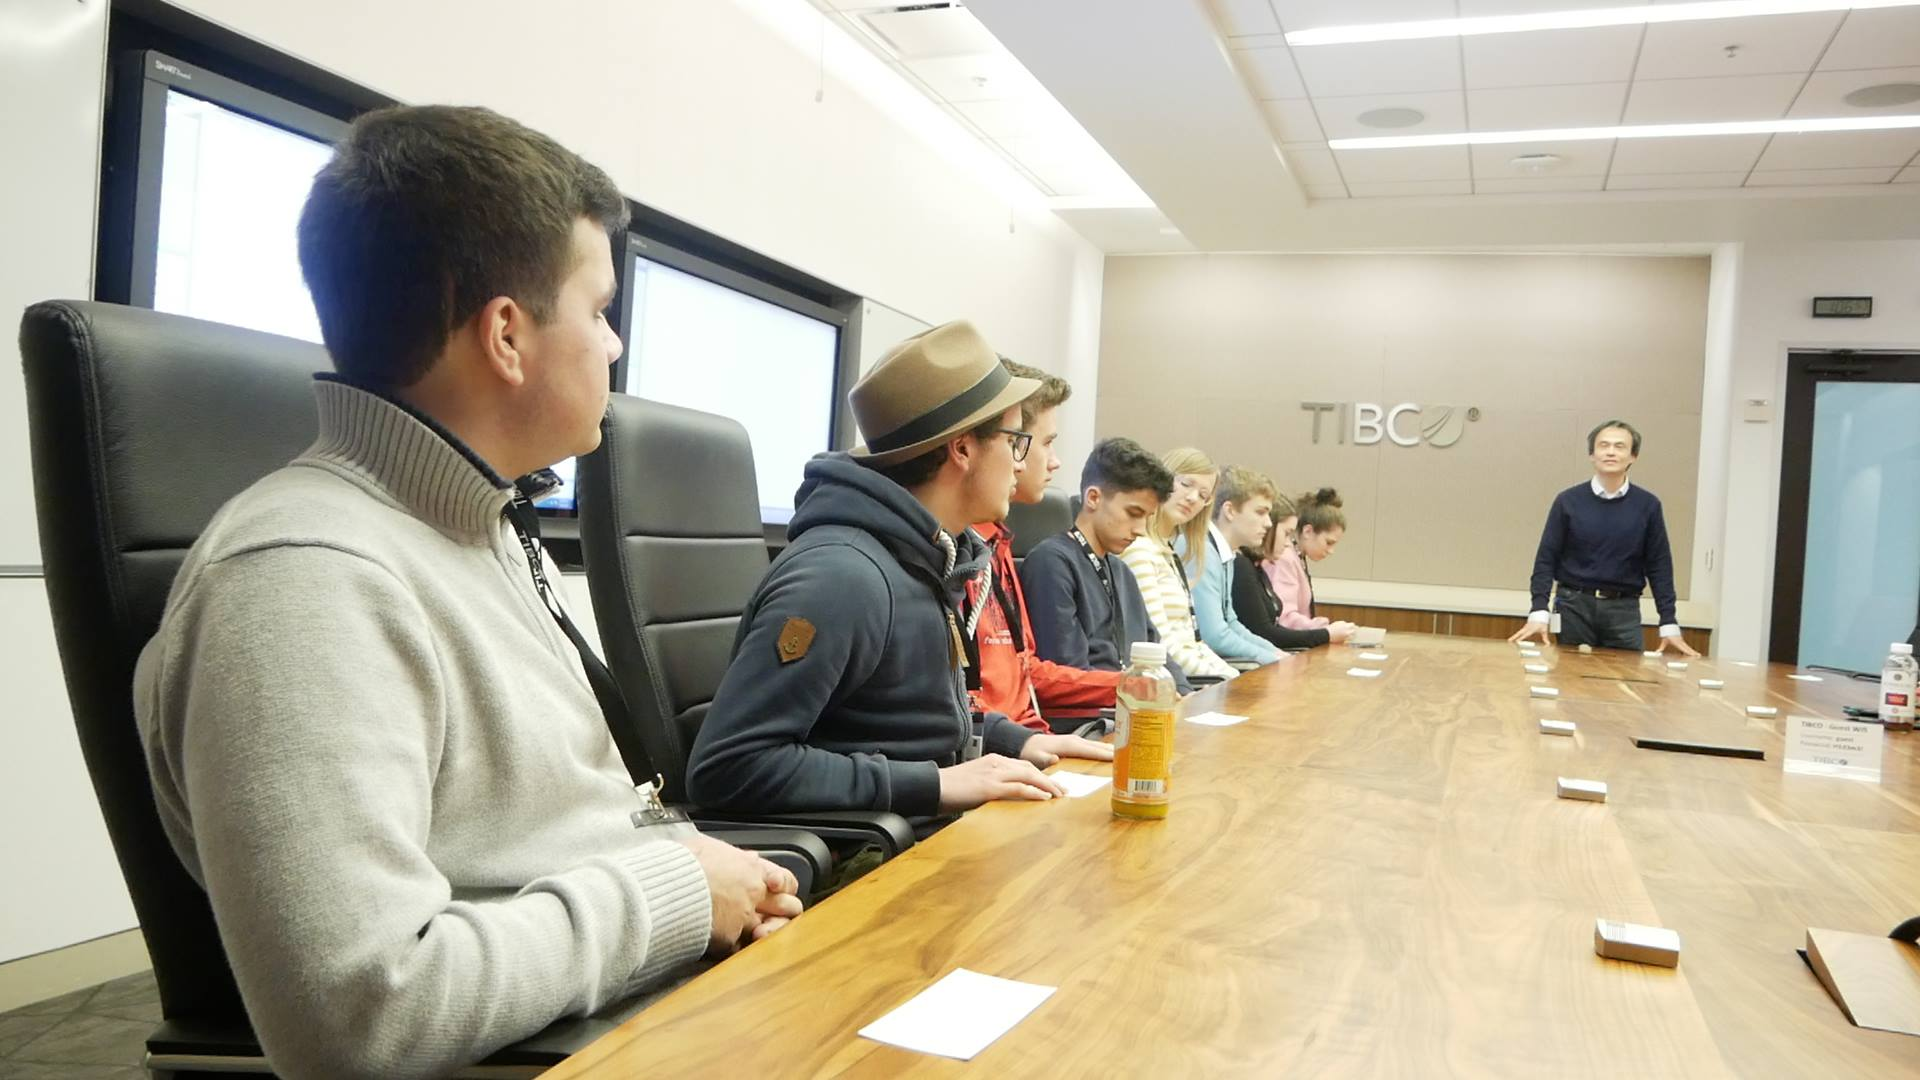 BEAM students get a tour of TIBCO